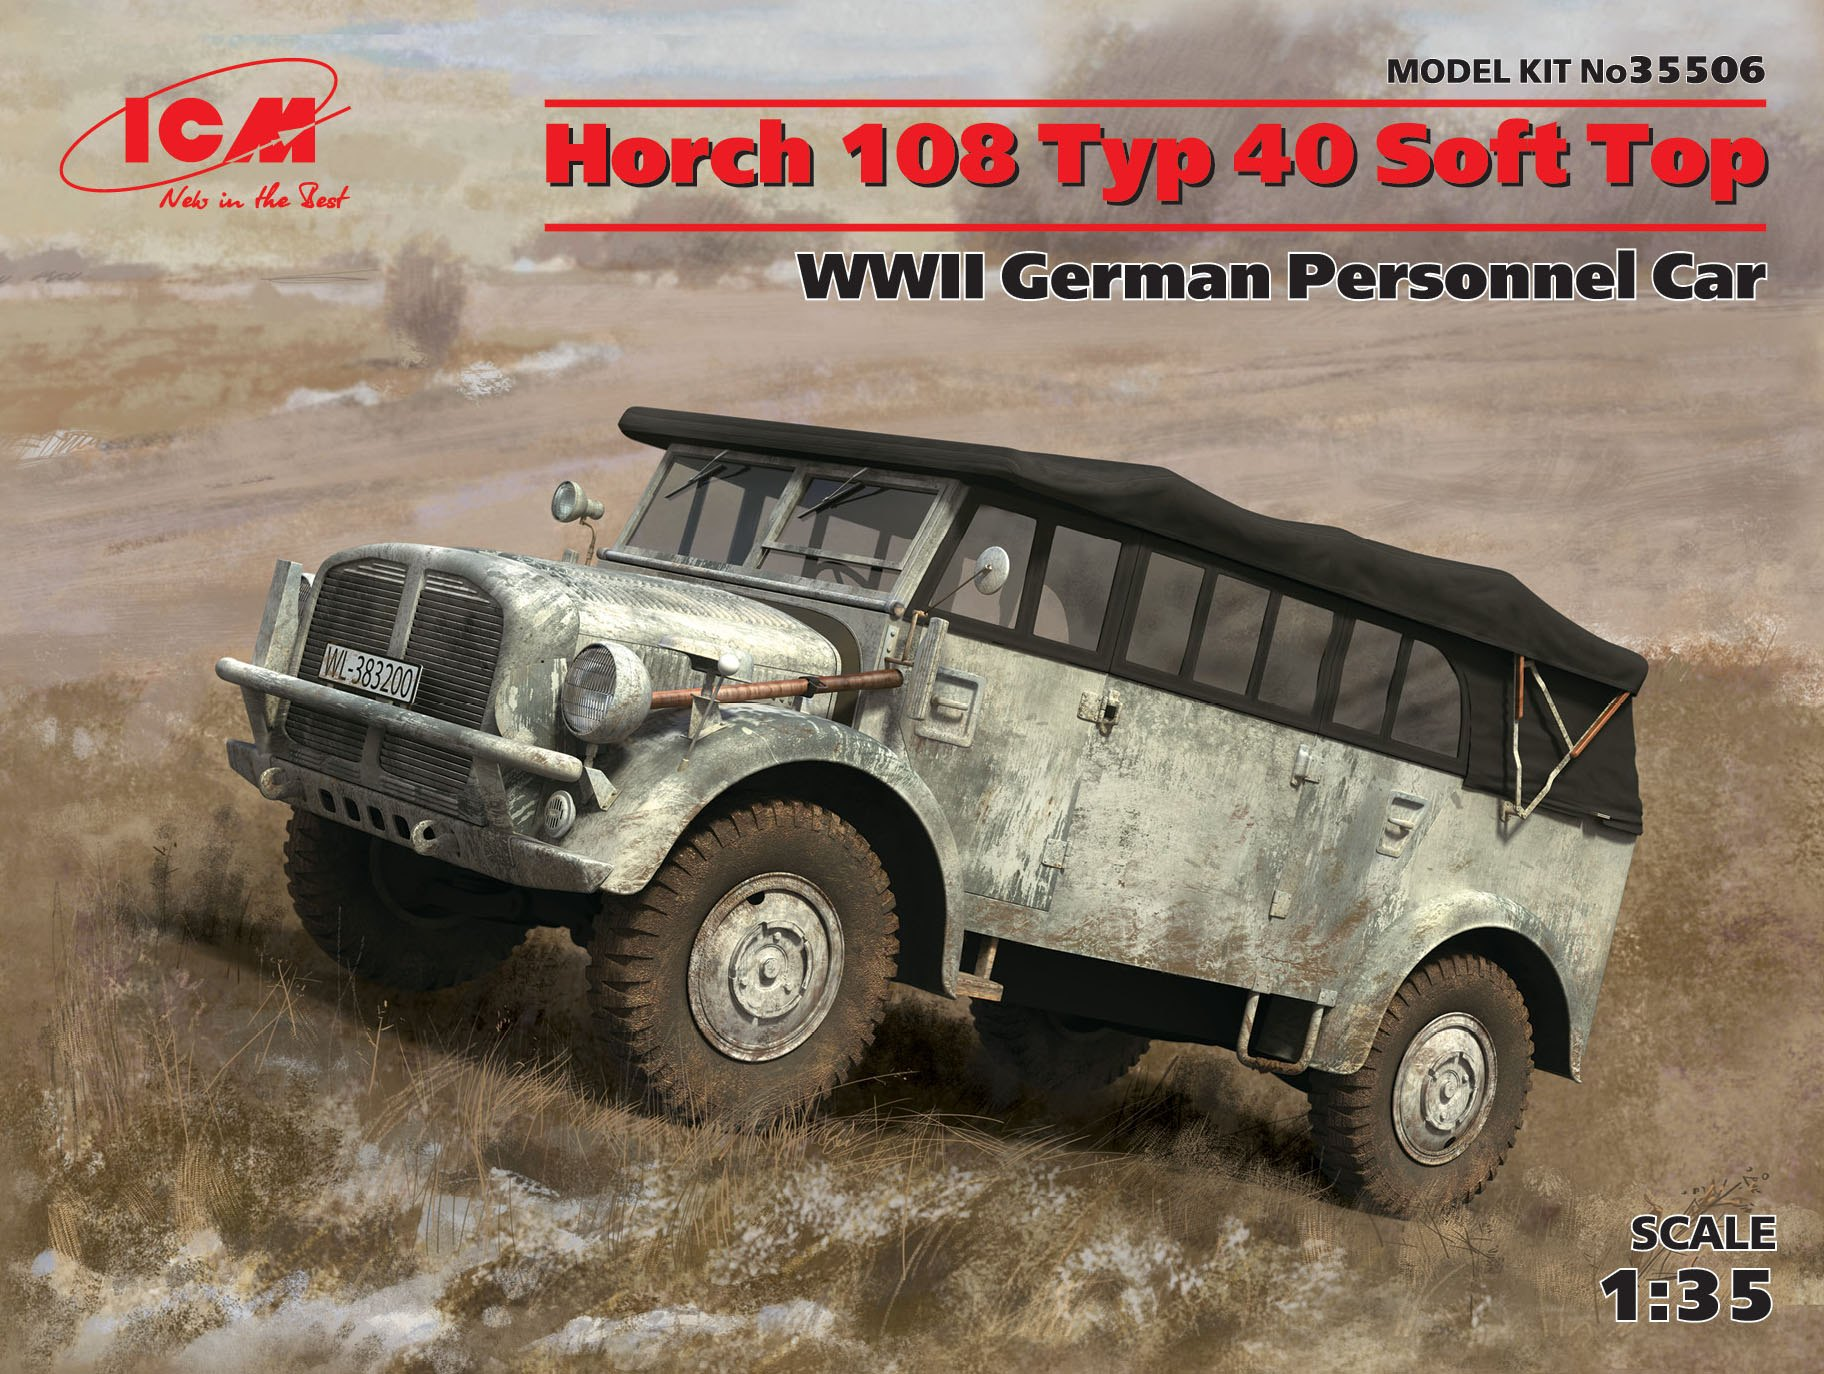 ICM - Horch 108 Typ 40 Soft Top, WWII German Personnel Car